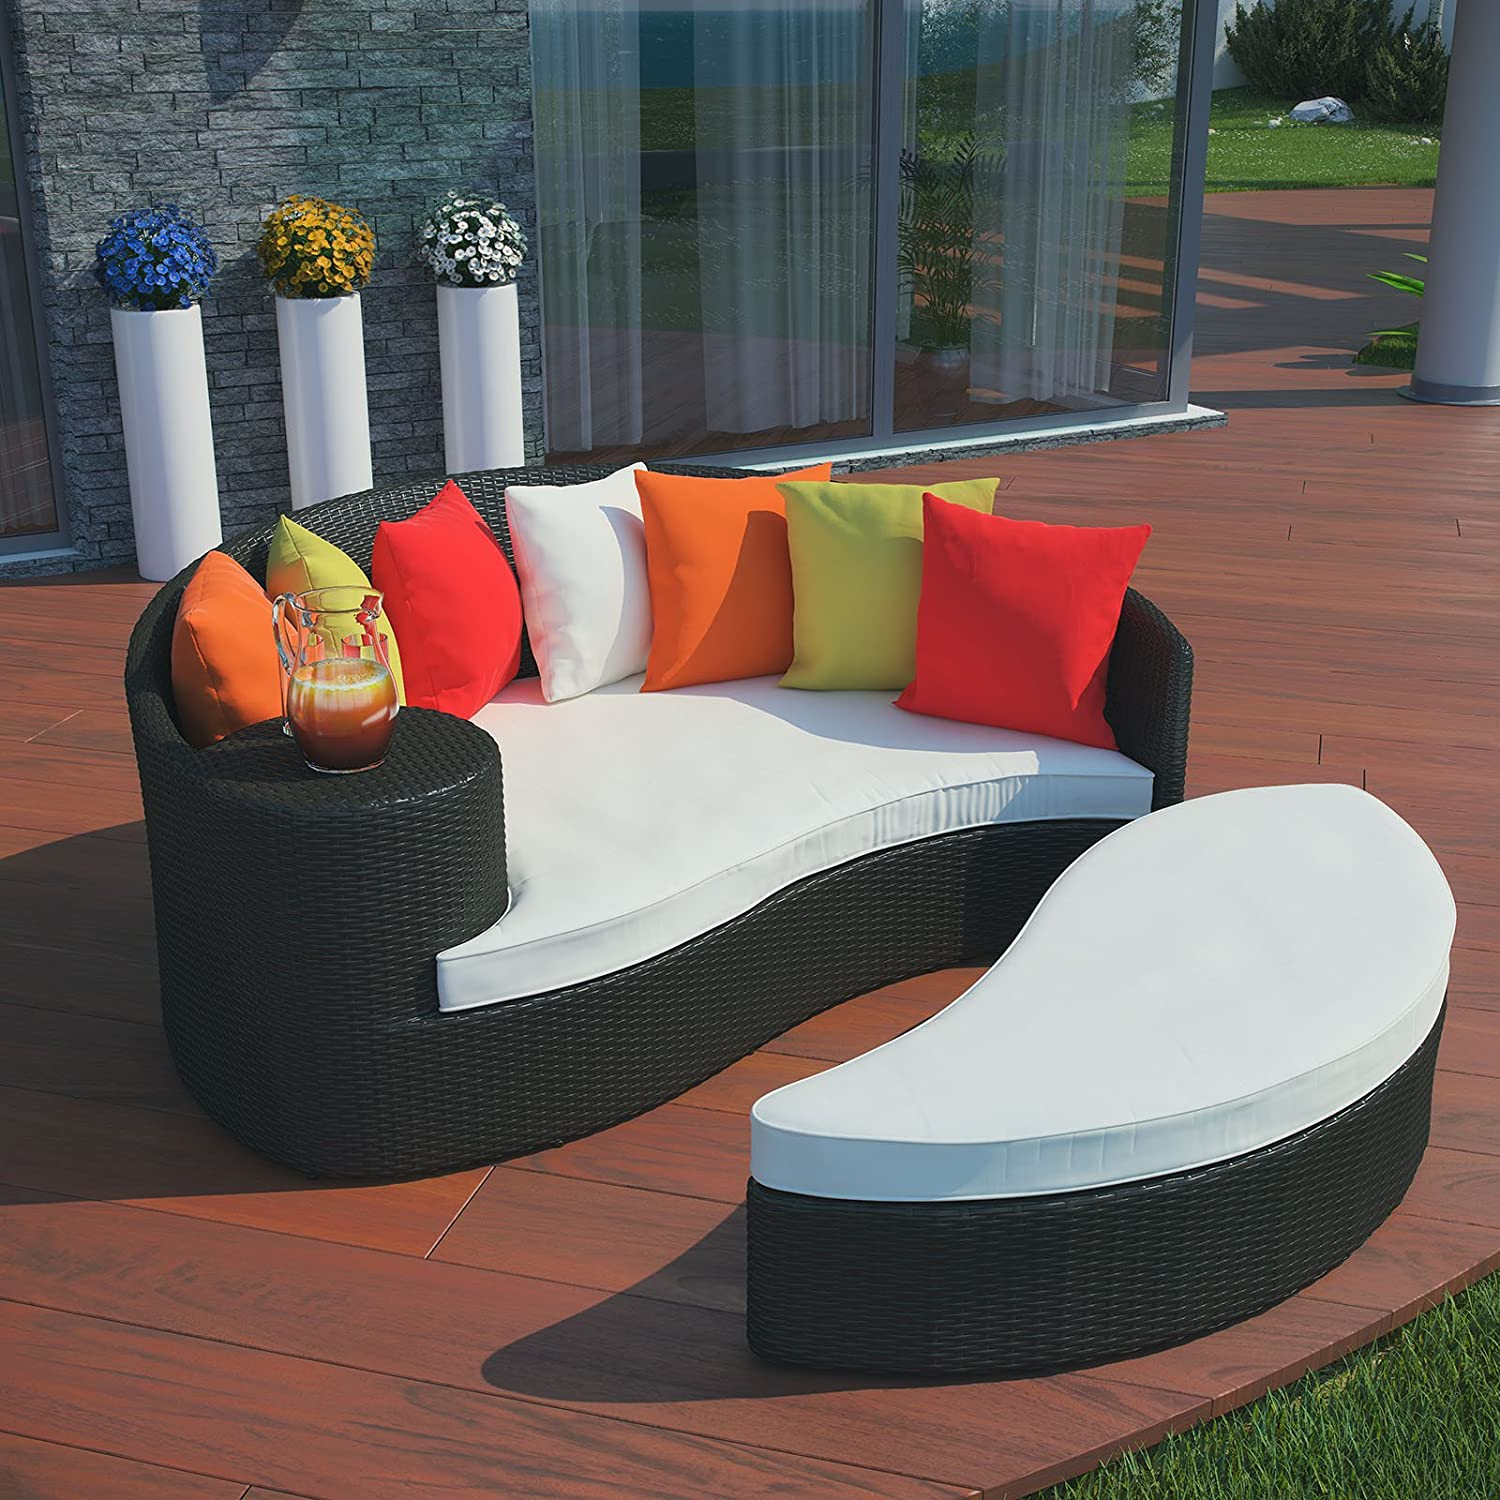 Amazon.com : Modway Taiji Outdoor Wicker Patio Daybed with Ottoman in  Espresso with Multi Colored Cushions : Garden & Outdoor